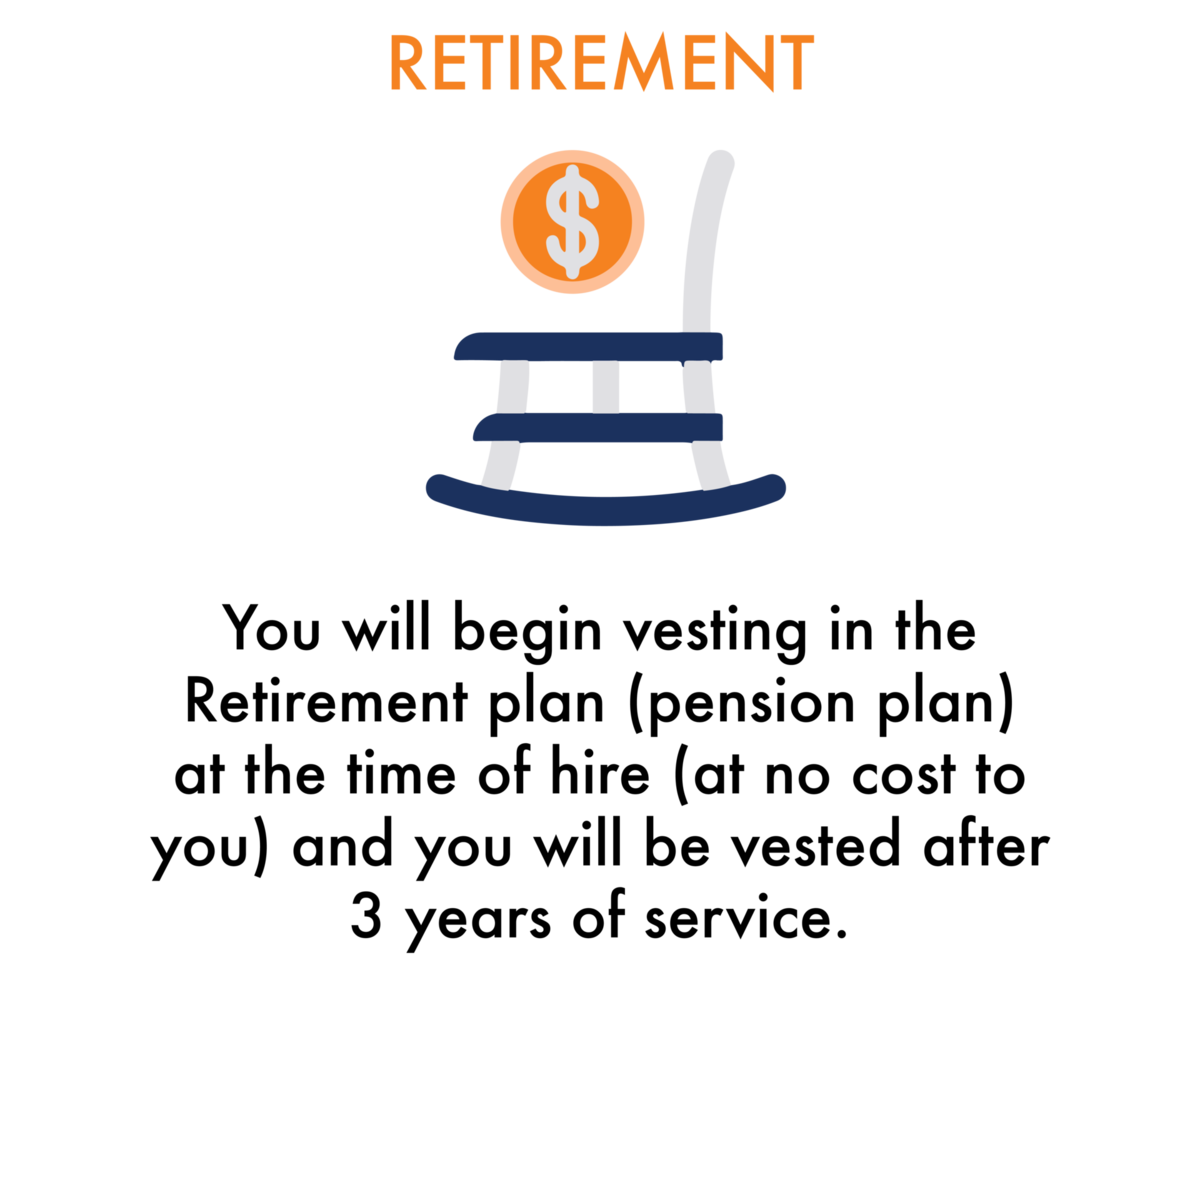 Retirement:  You will begin vesting in the Retirement plan (pension plan) at the time of hire (at no cost to you) and you will be vested after 3 years of service.